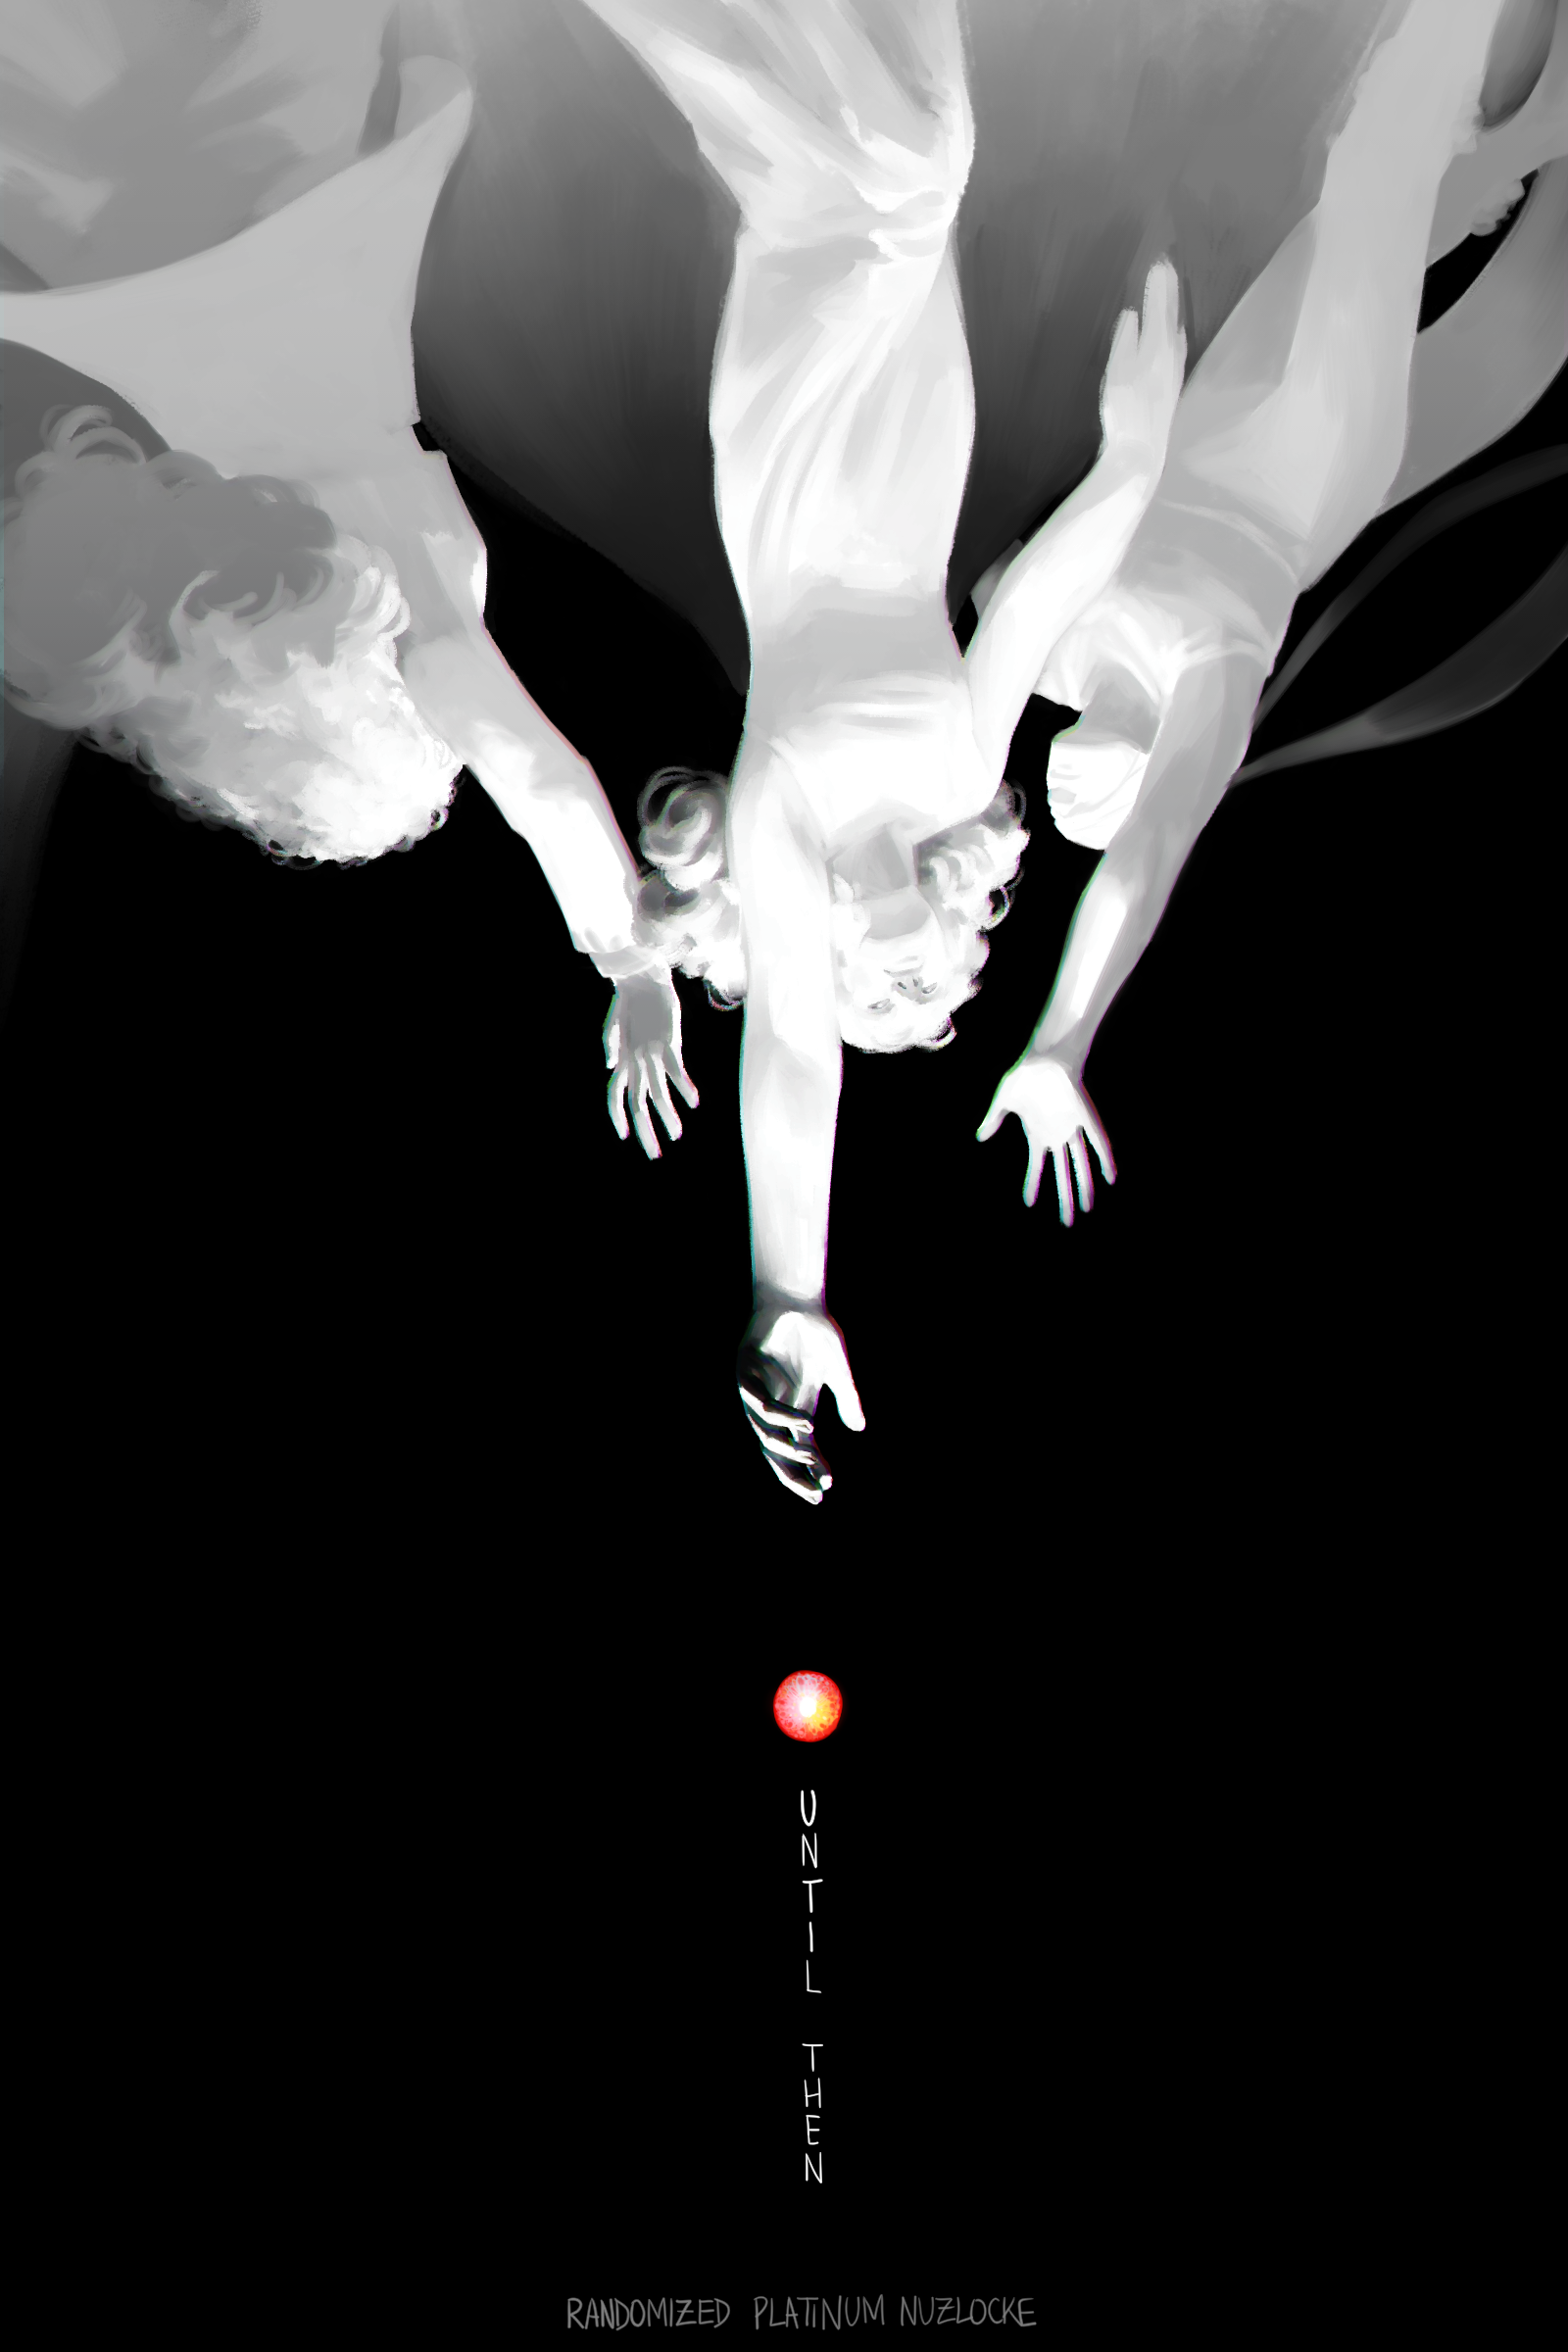 The scene is set against a pure black background. We see three upside-down monochromatic, humanoid figures, all of which reaching towards a glowing red 'orb.' The glow inside the orb seems to separate into three hues: pink, blue, and yellow. Beneath the orb, in vertical white text, reads UNTIL THEN. On the bottom of the image, in grey, reads RANDOMIZED PLATINUM NUZLOCKE.